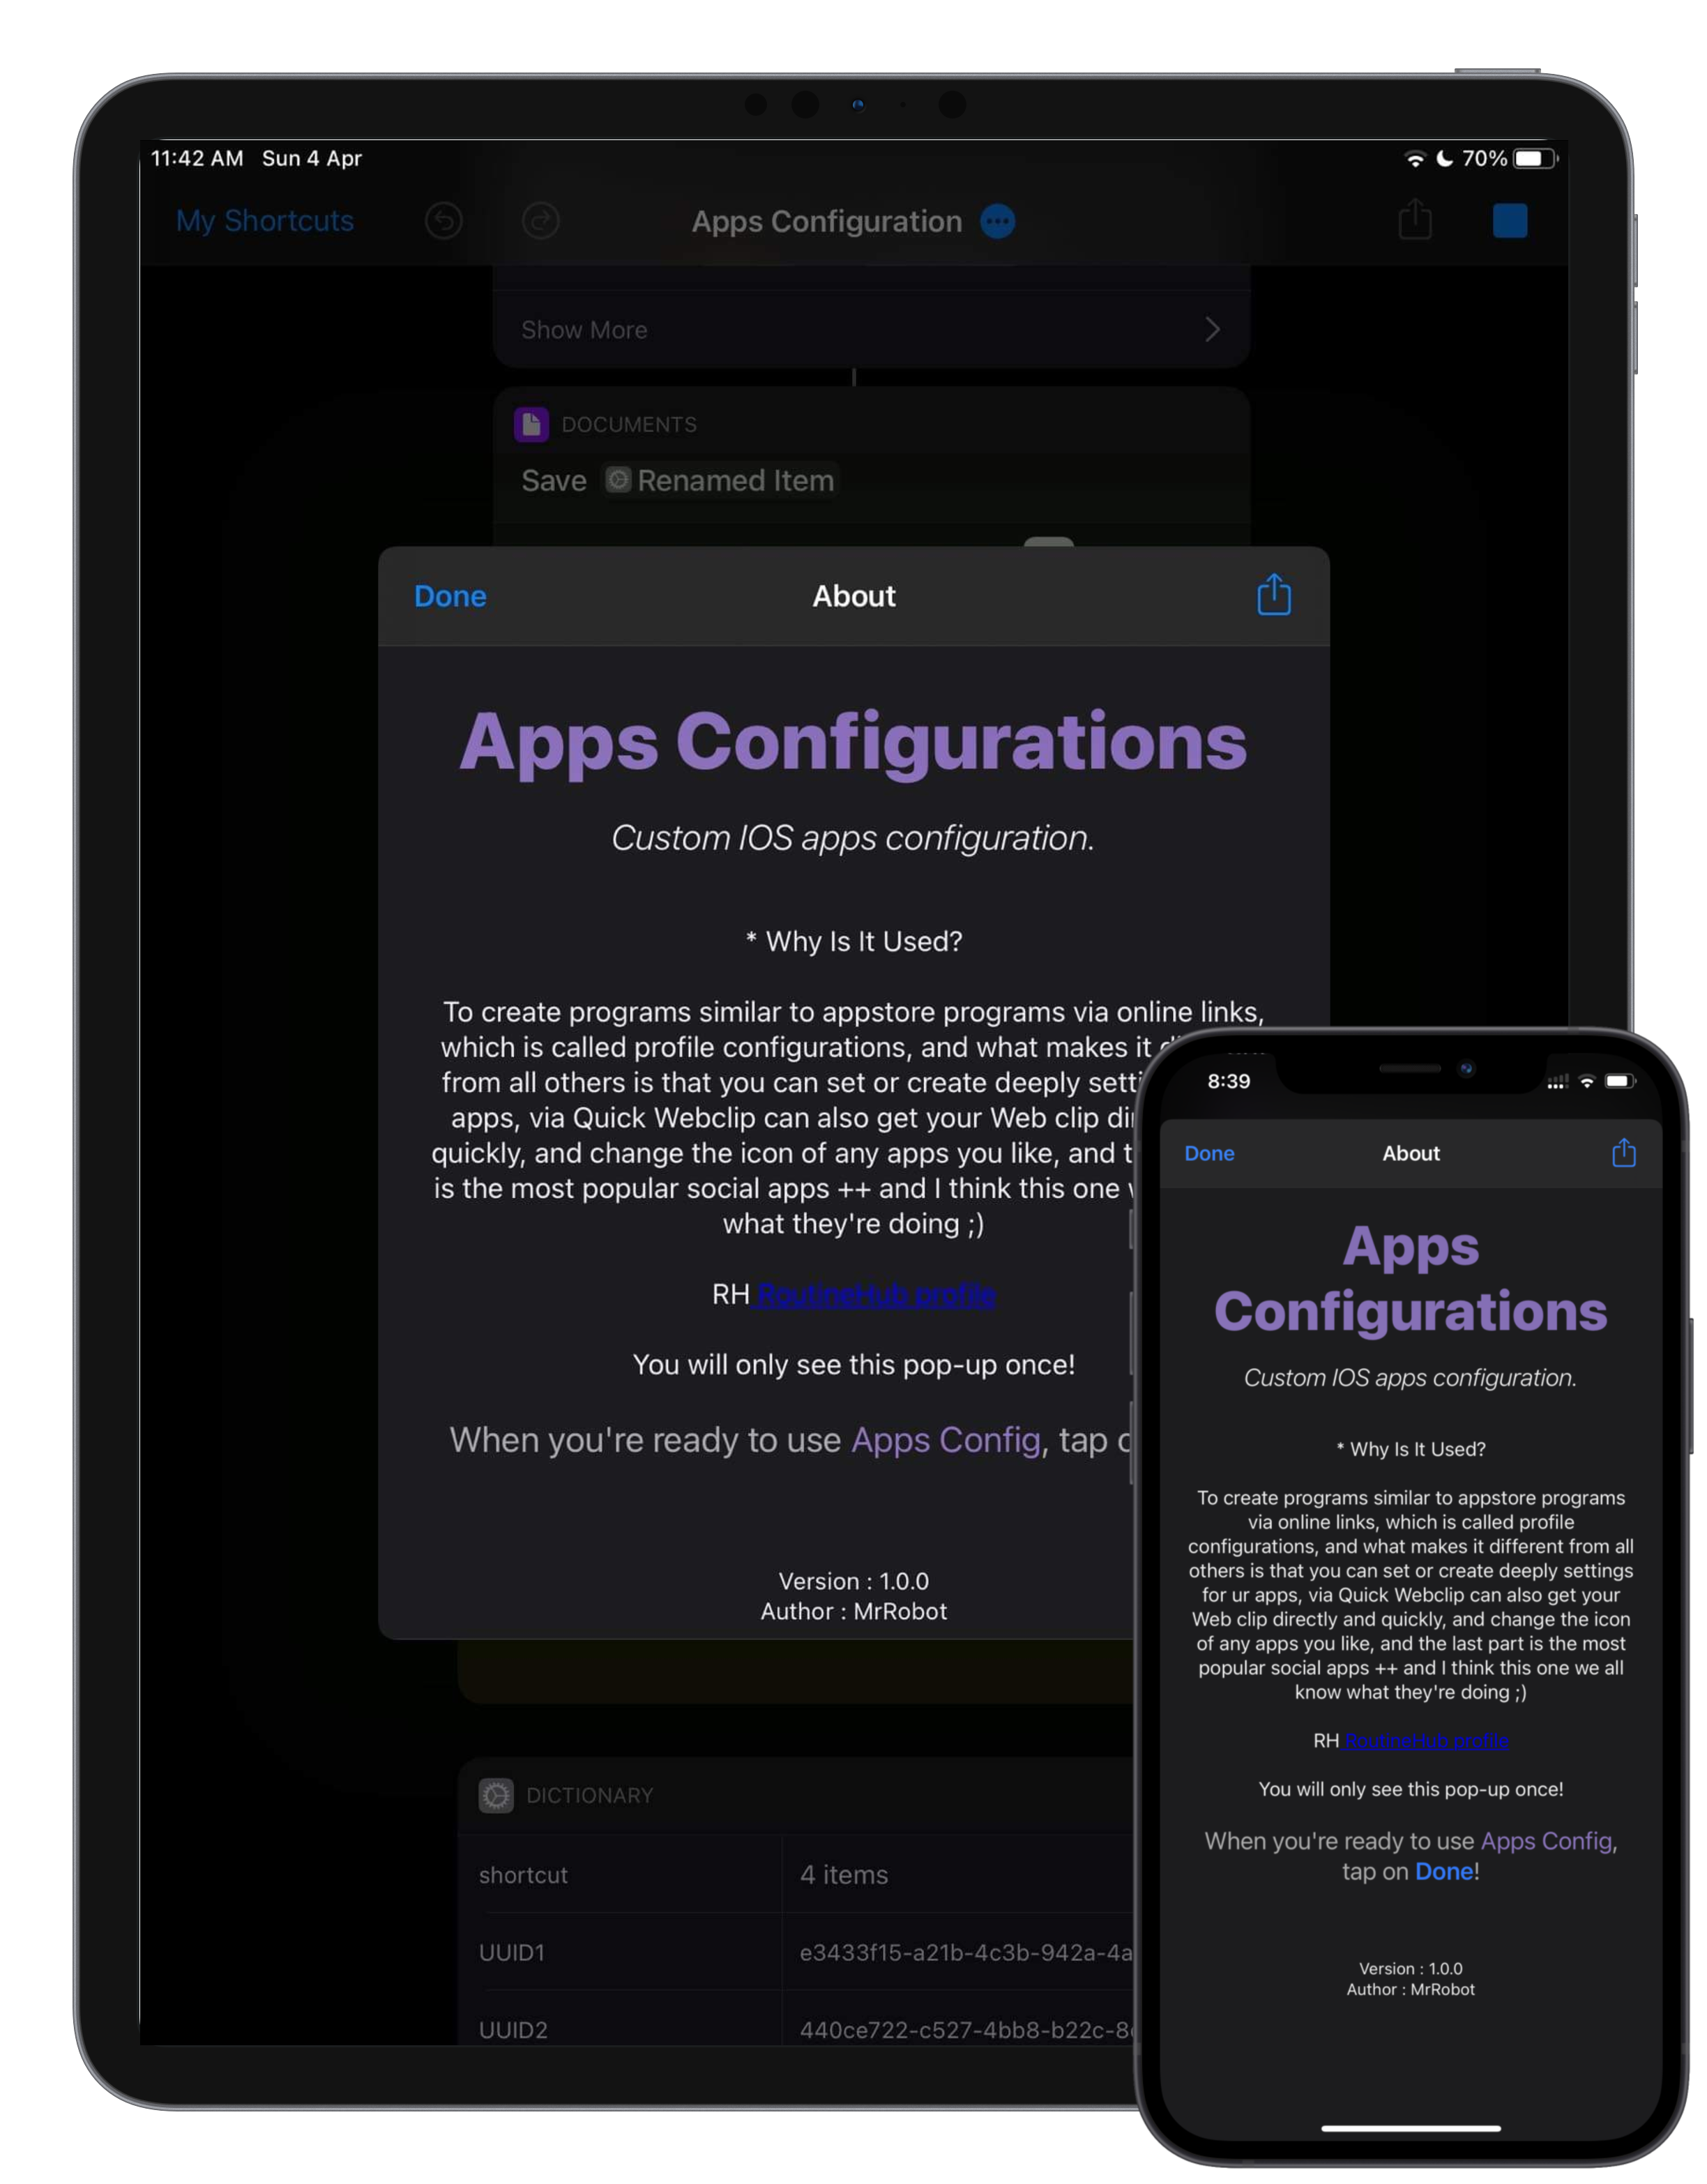 Apps Configuration screenshot from iOS